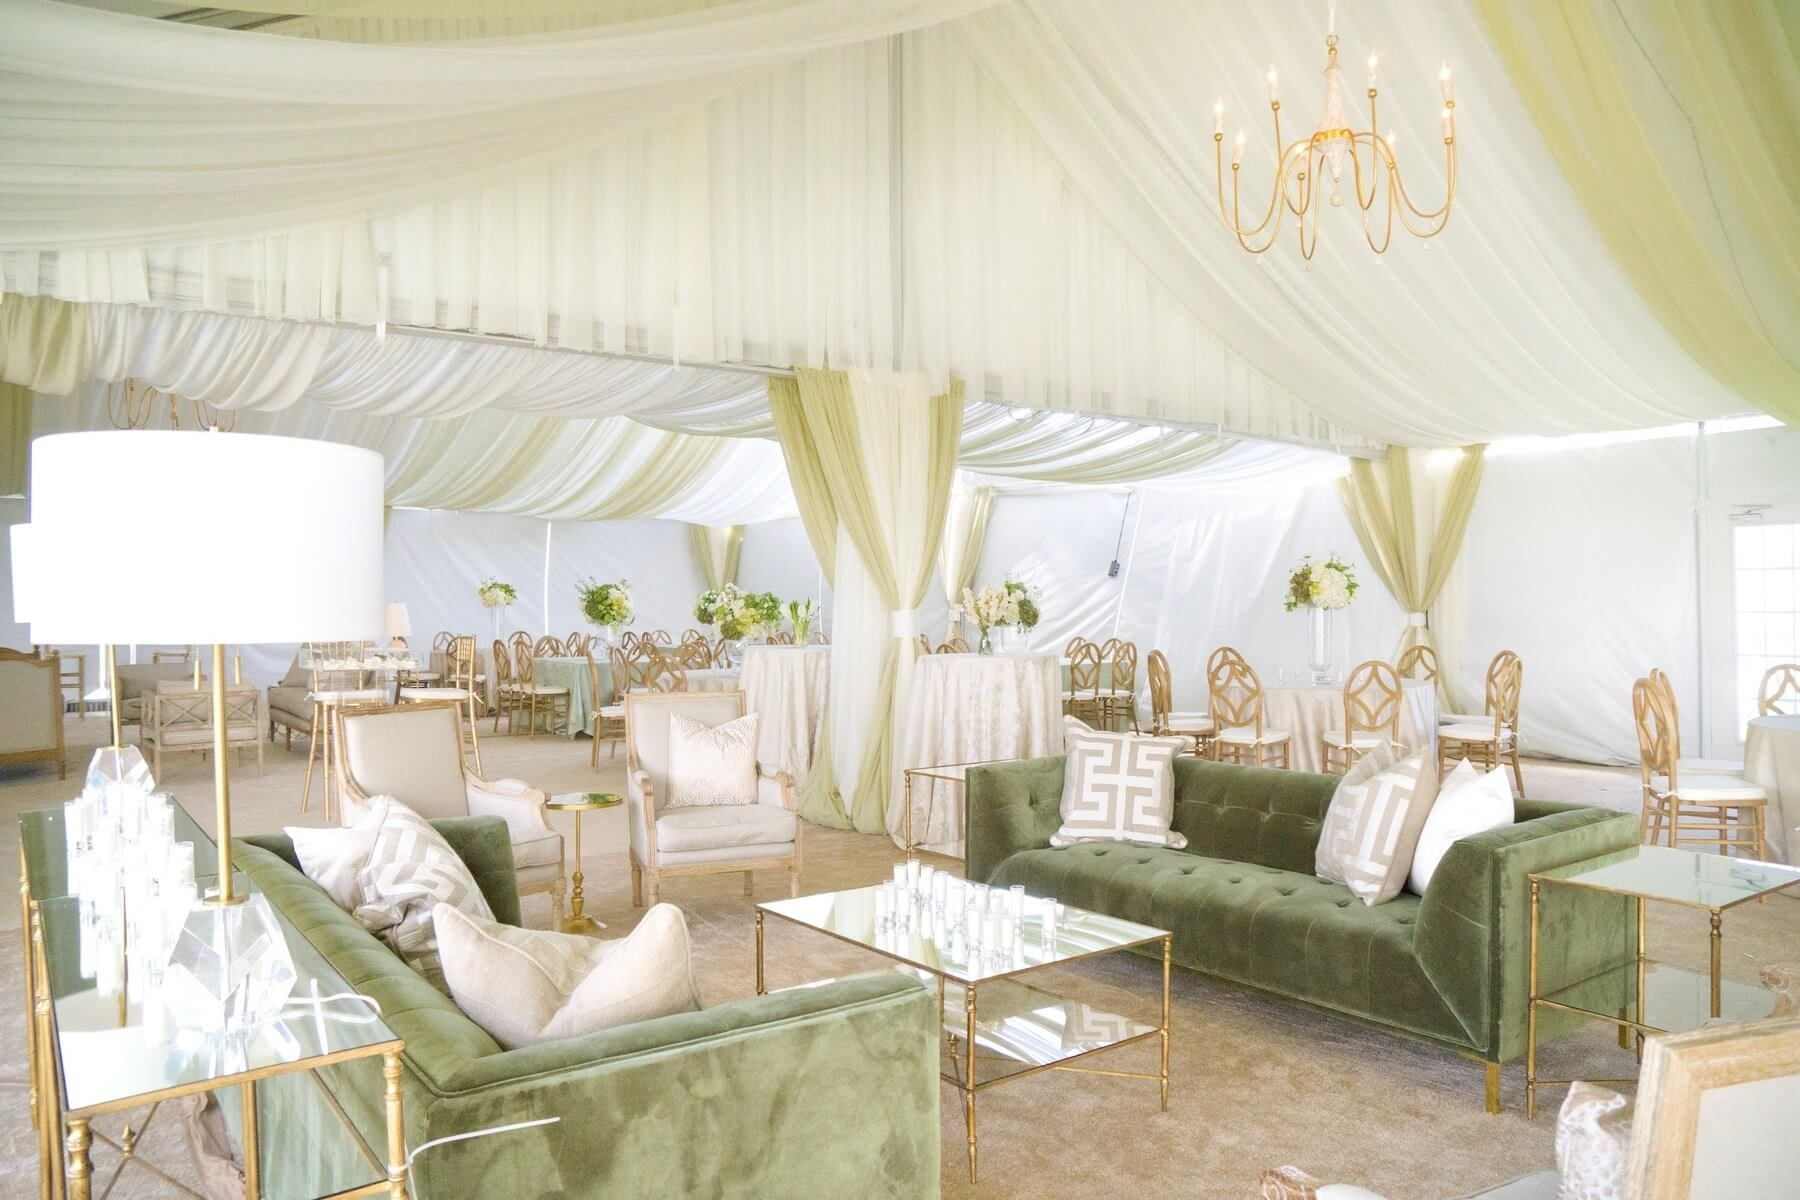 8 Wedding Trends to Watch For